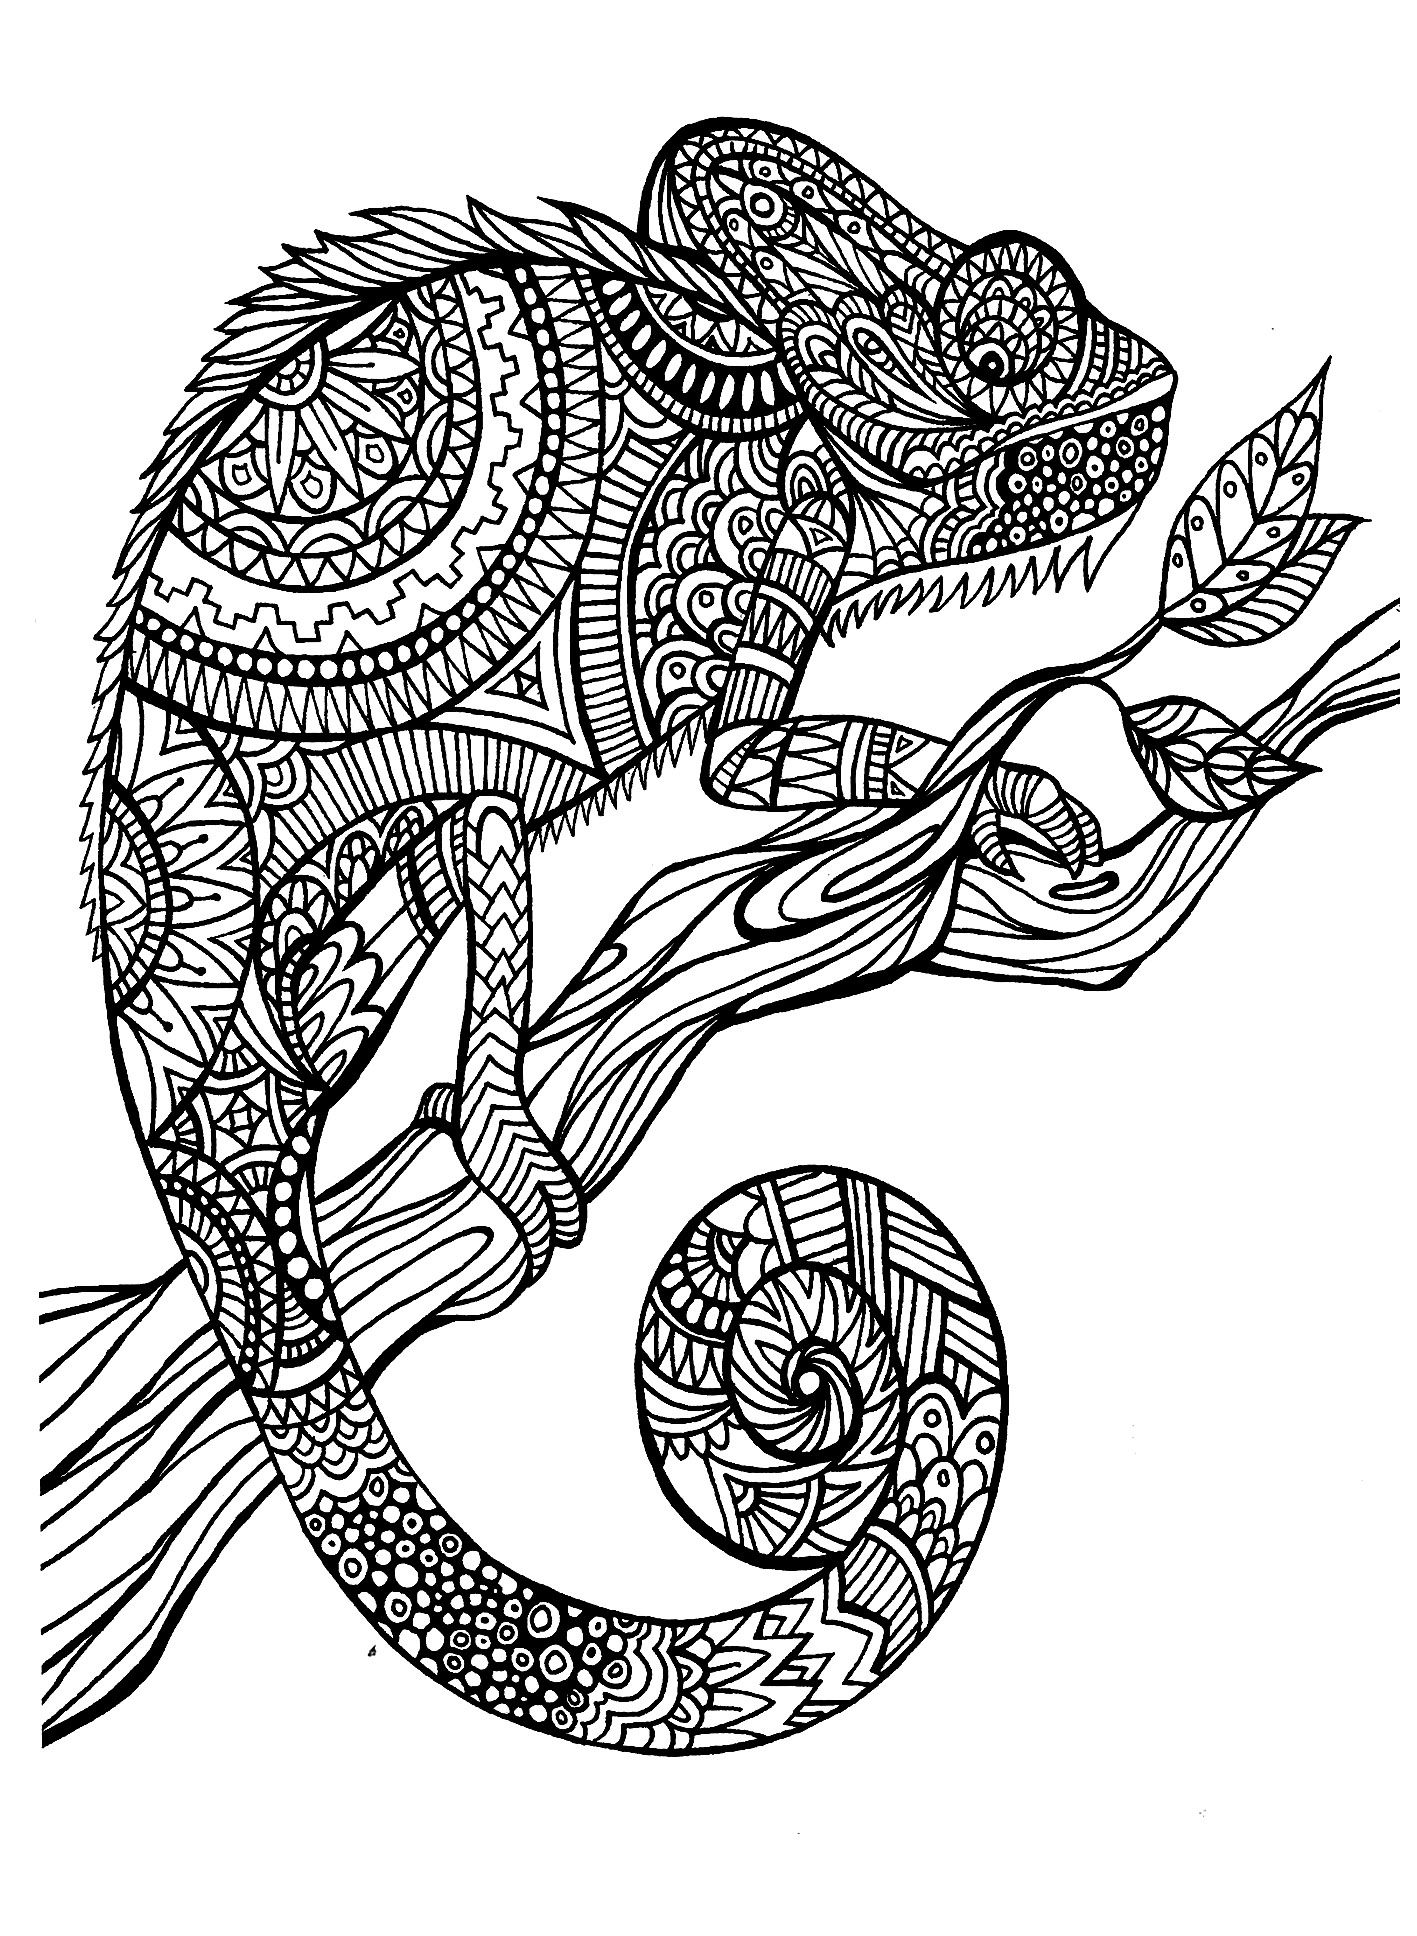 Free Coloring Page Adult Cameleon Patterns A Magnificien To Color Pattern PagesAnimal